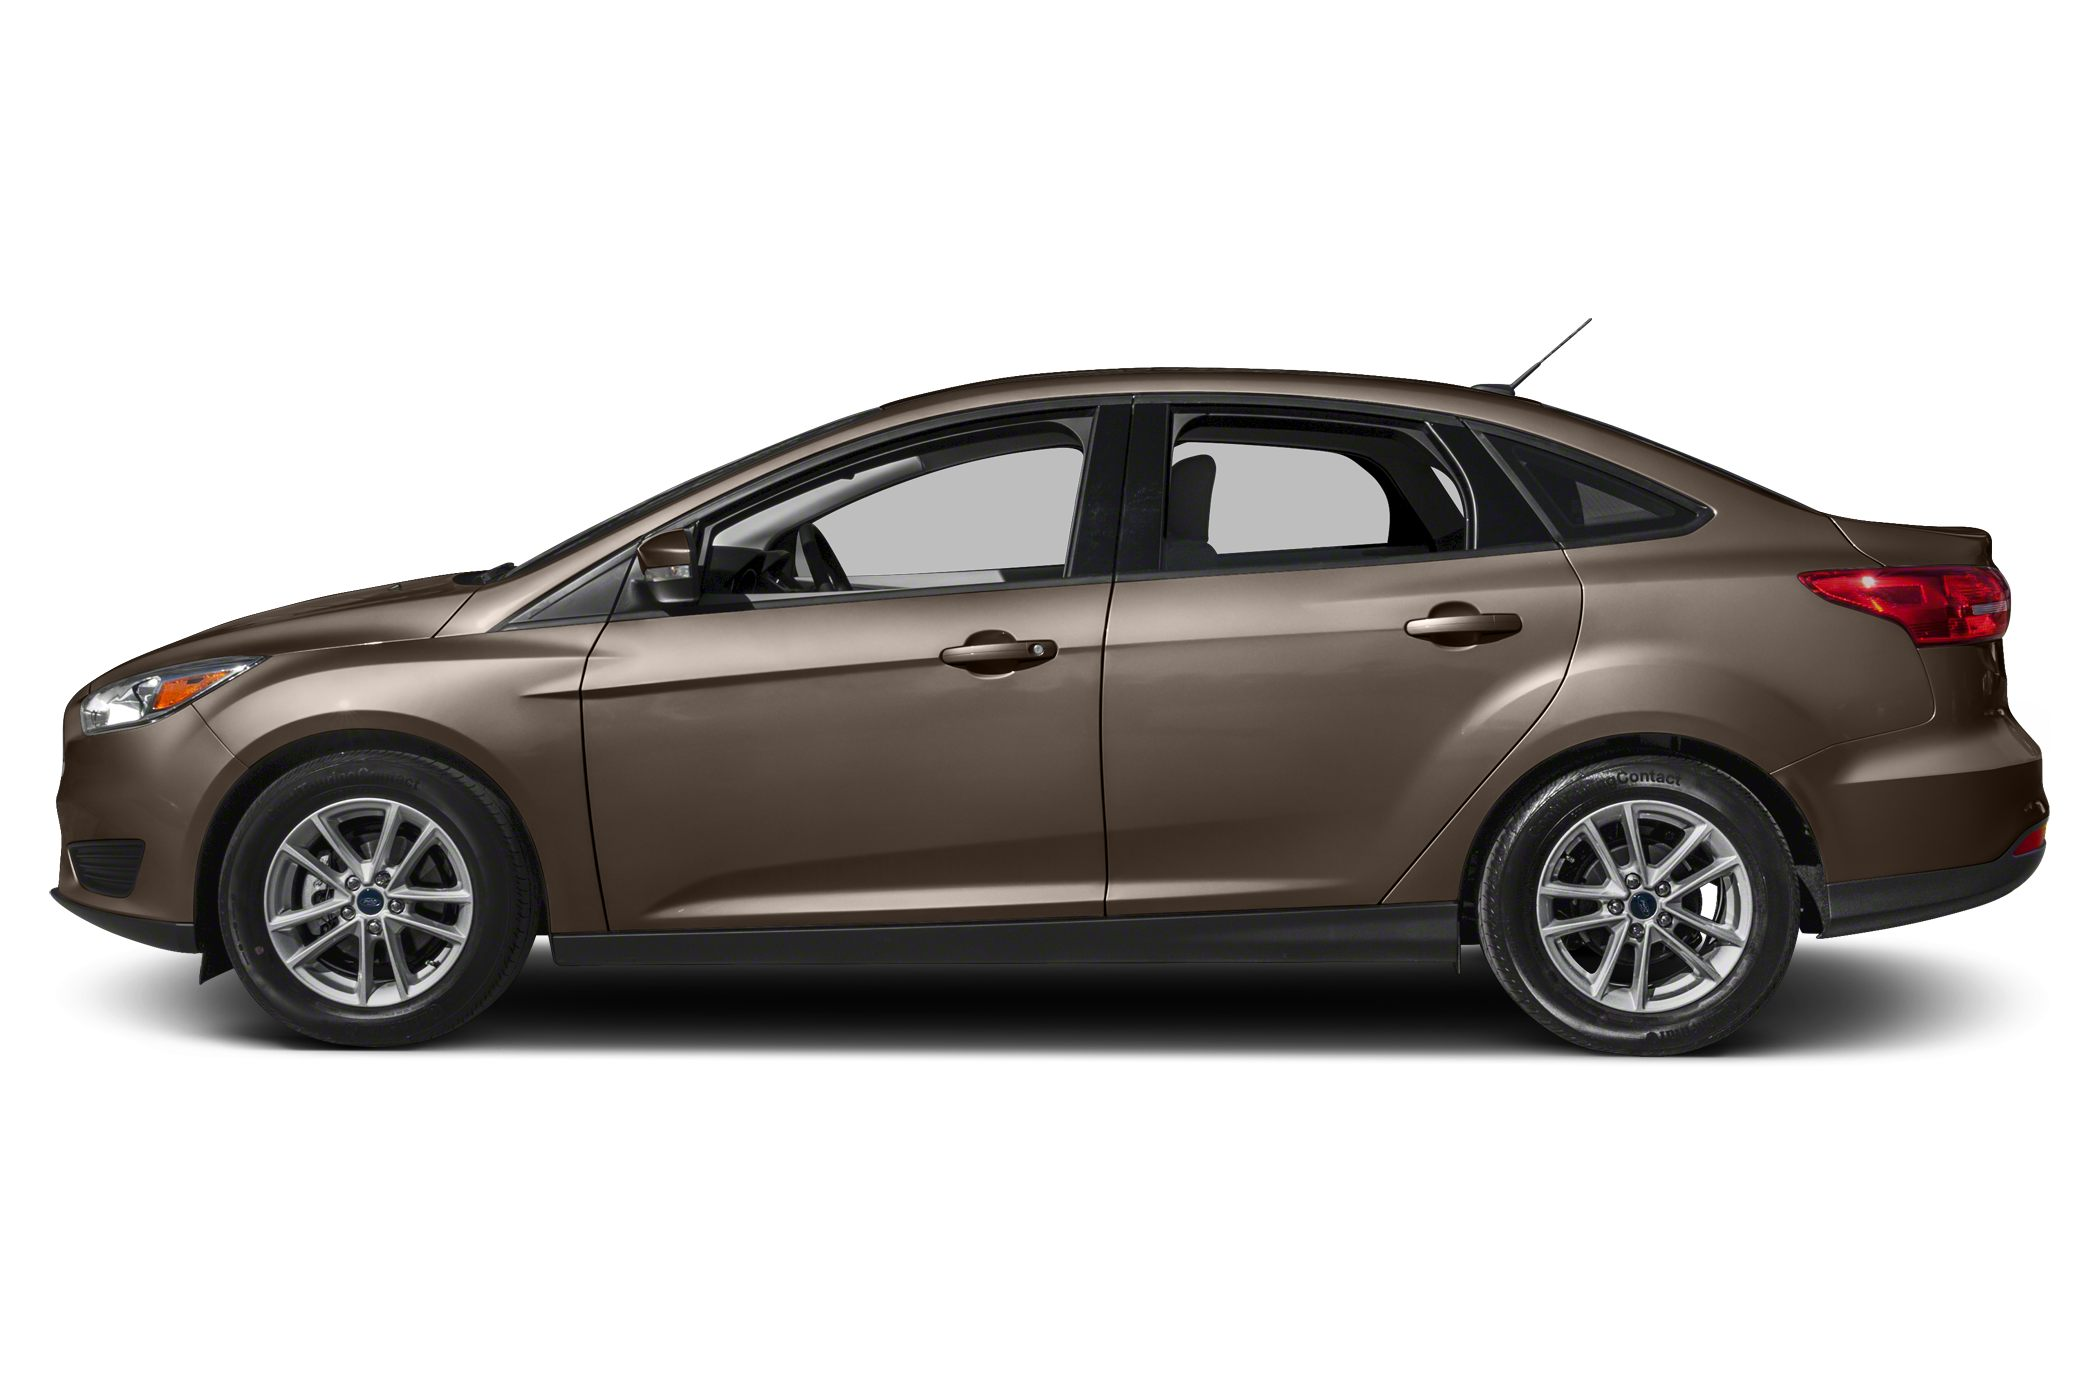 Ford focus for sale near me images drivins for Motor and vehicles near me